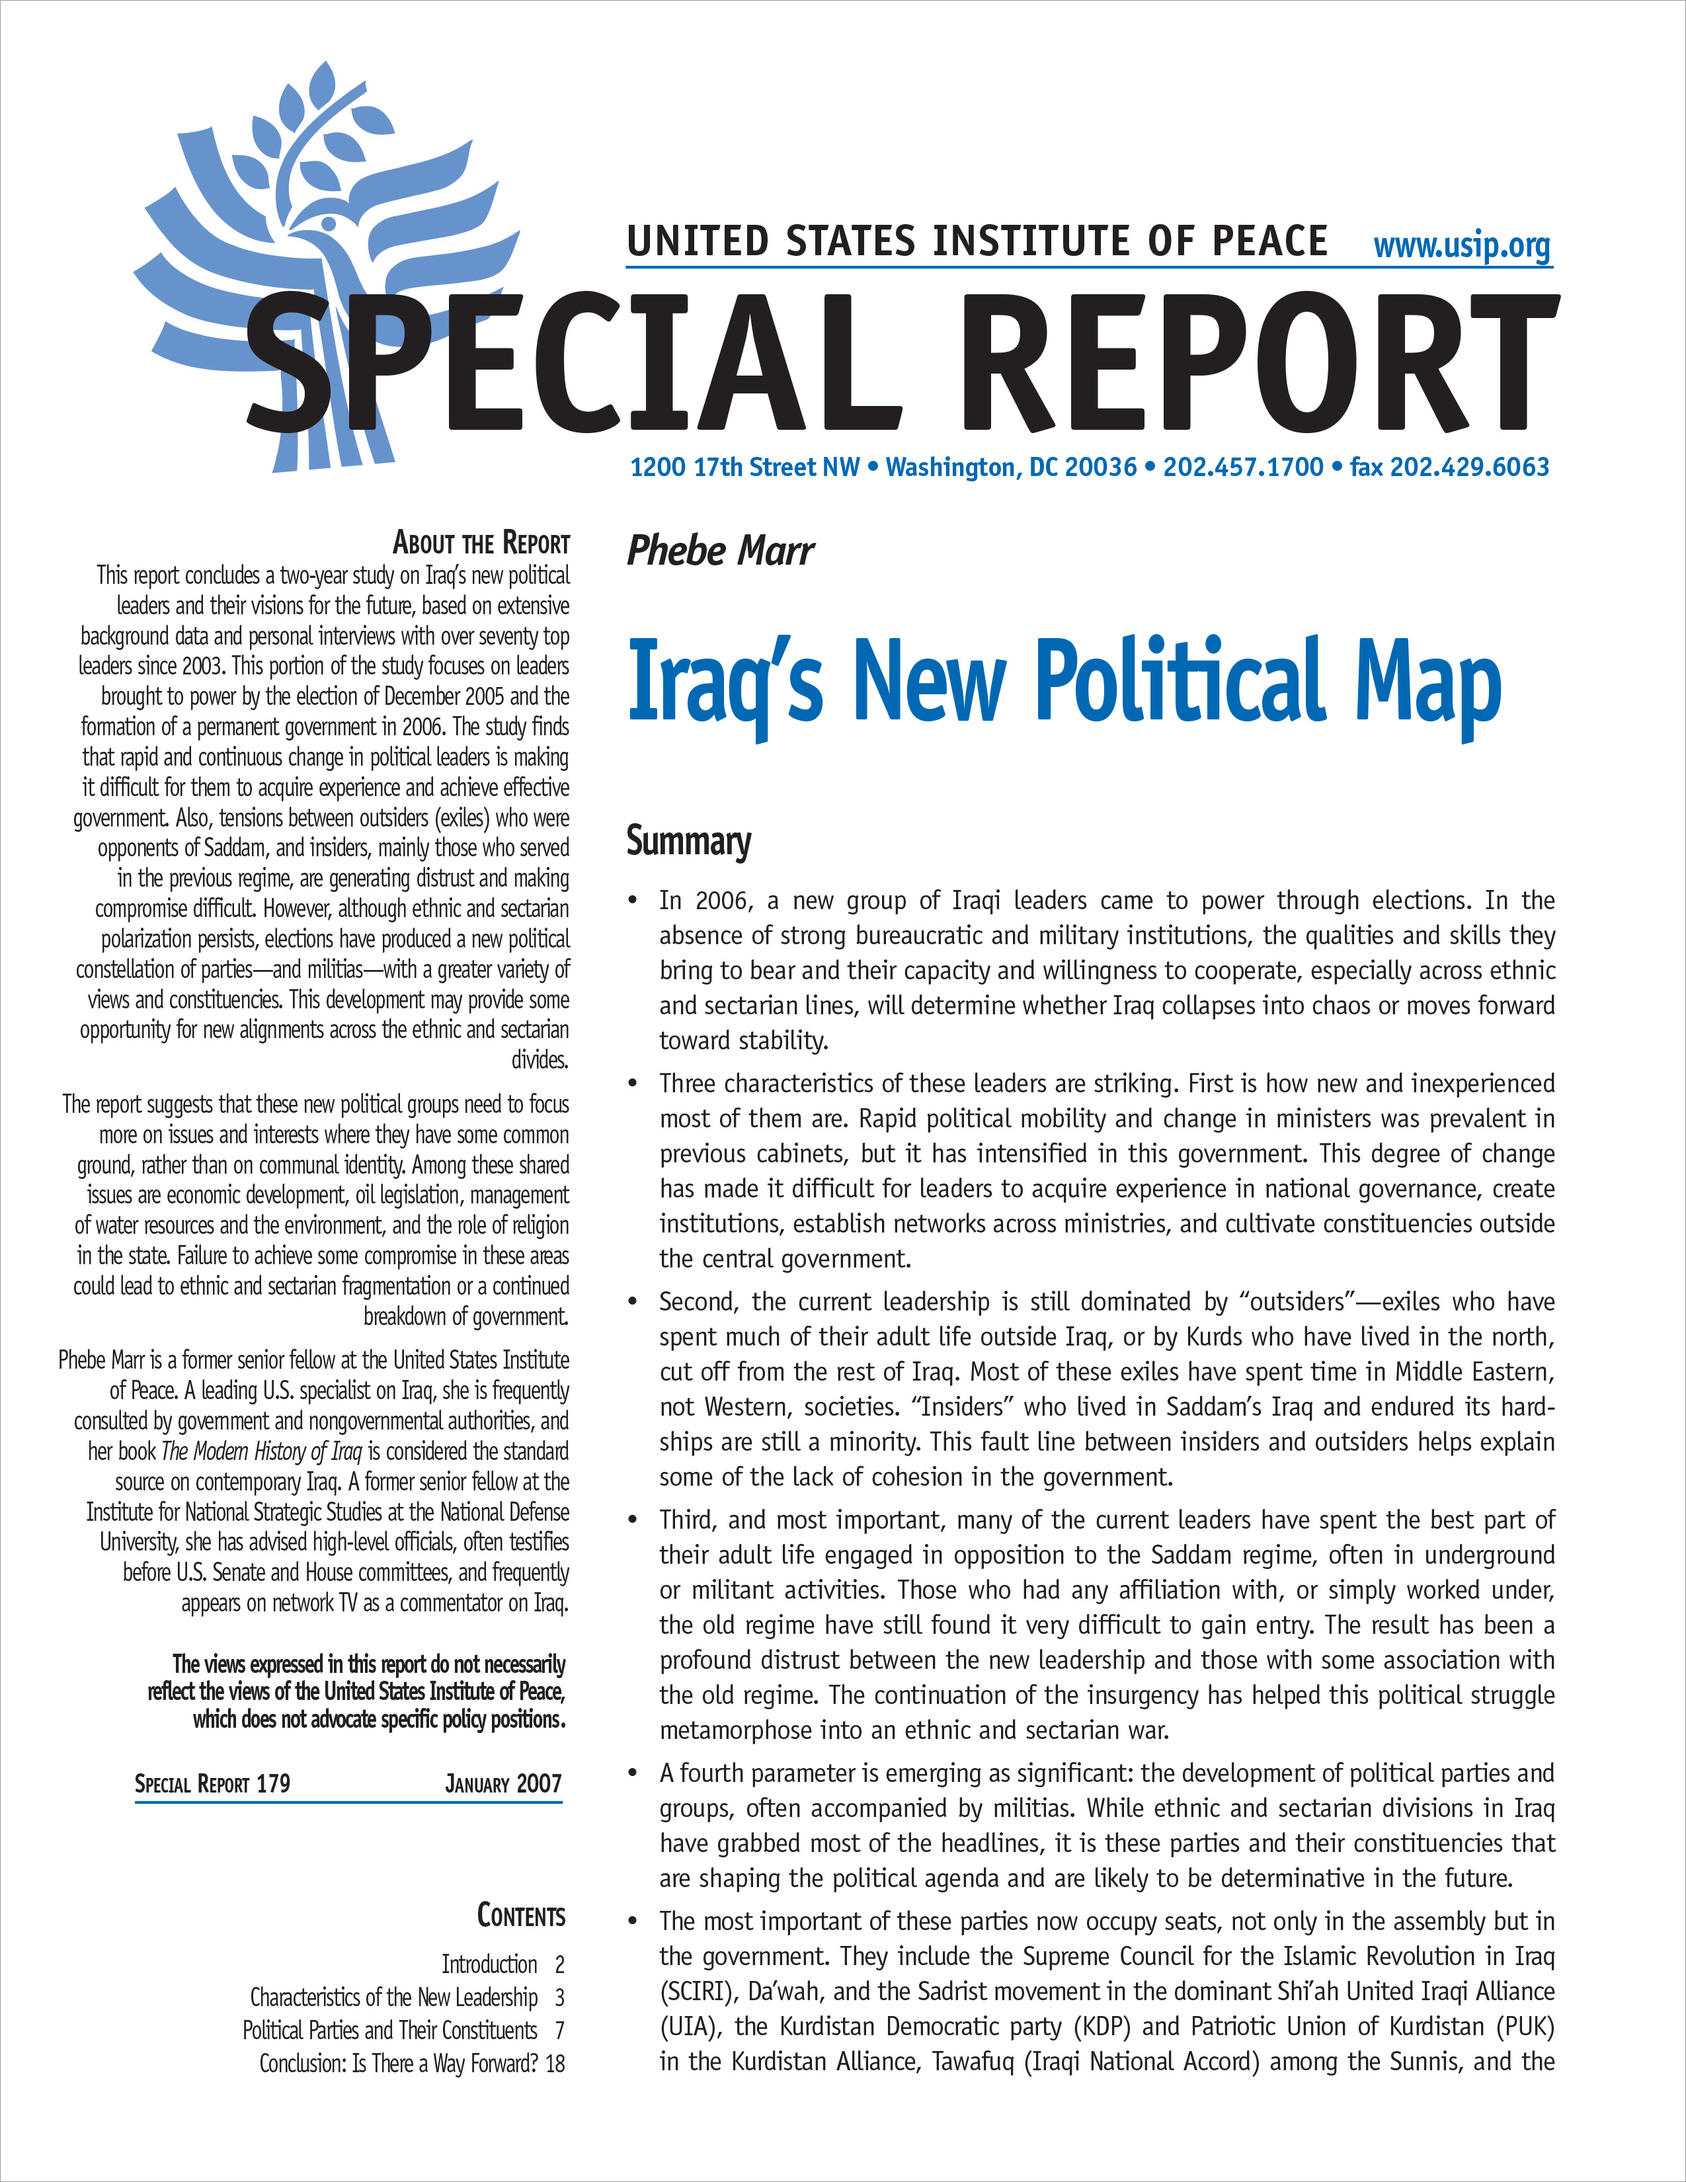 Iraq's New Political Map | United States Institute of Peace